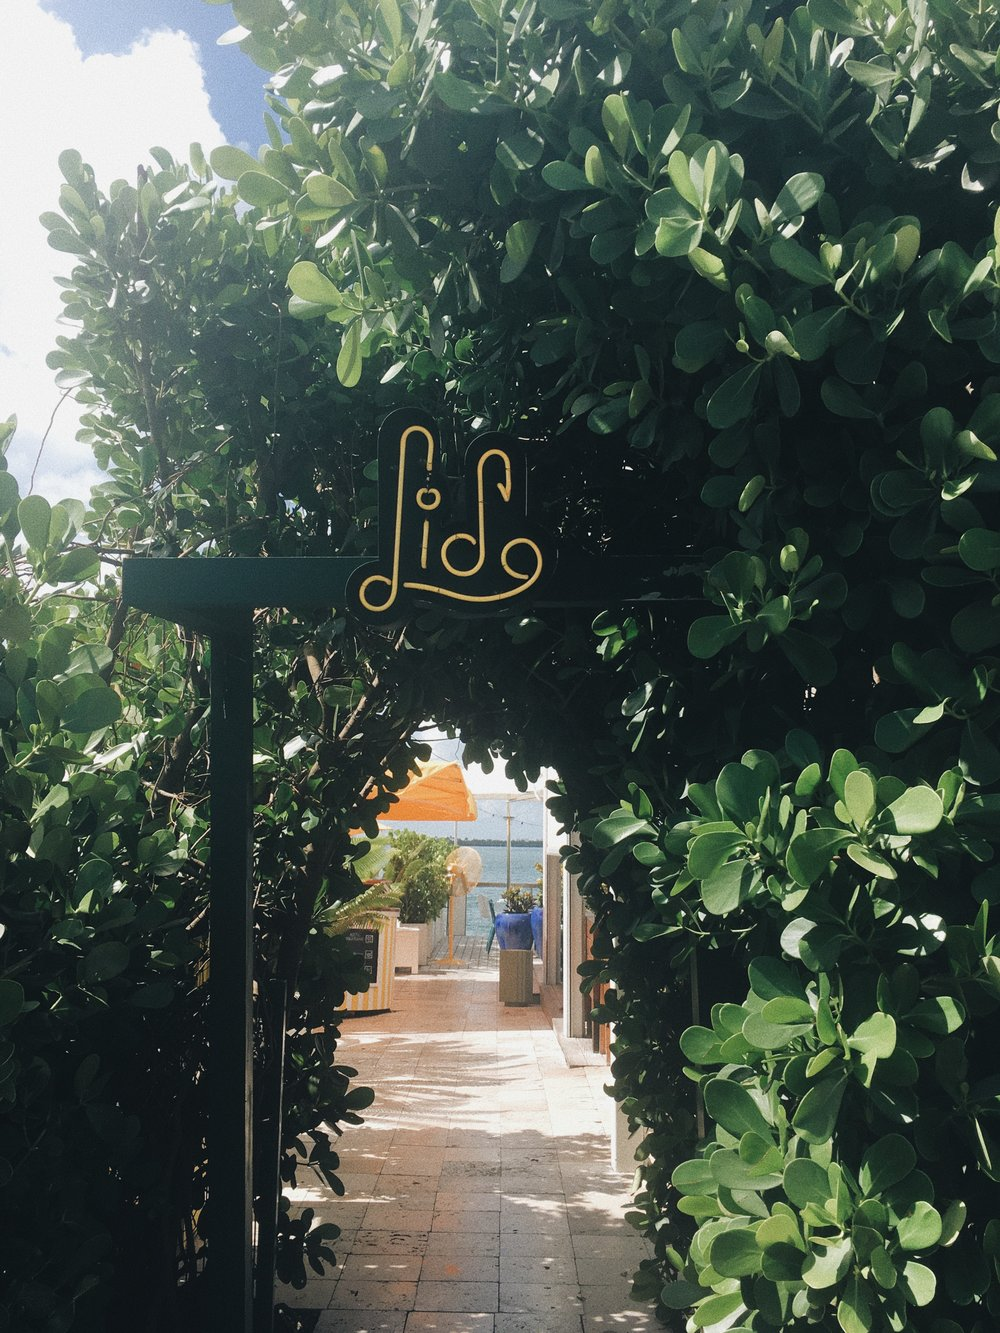 Lido Bayside Grill at The Standard Spa, Miami Beach | 40 Island Ave, Miami Beach, FL 33139